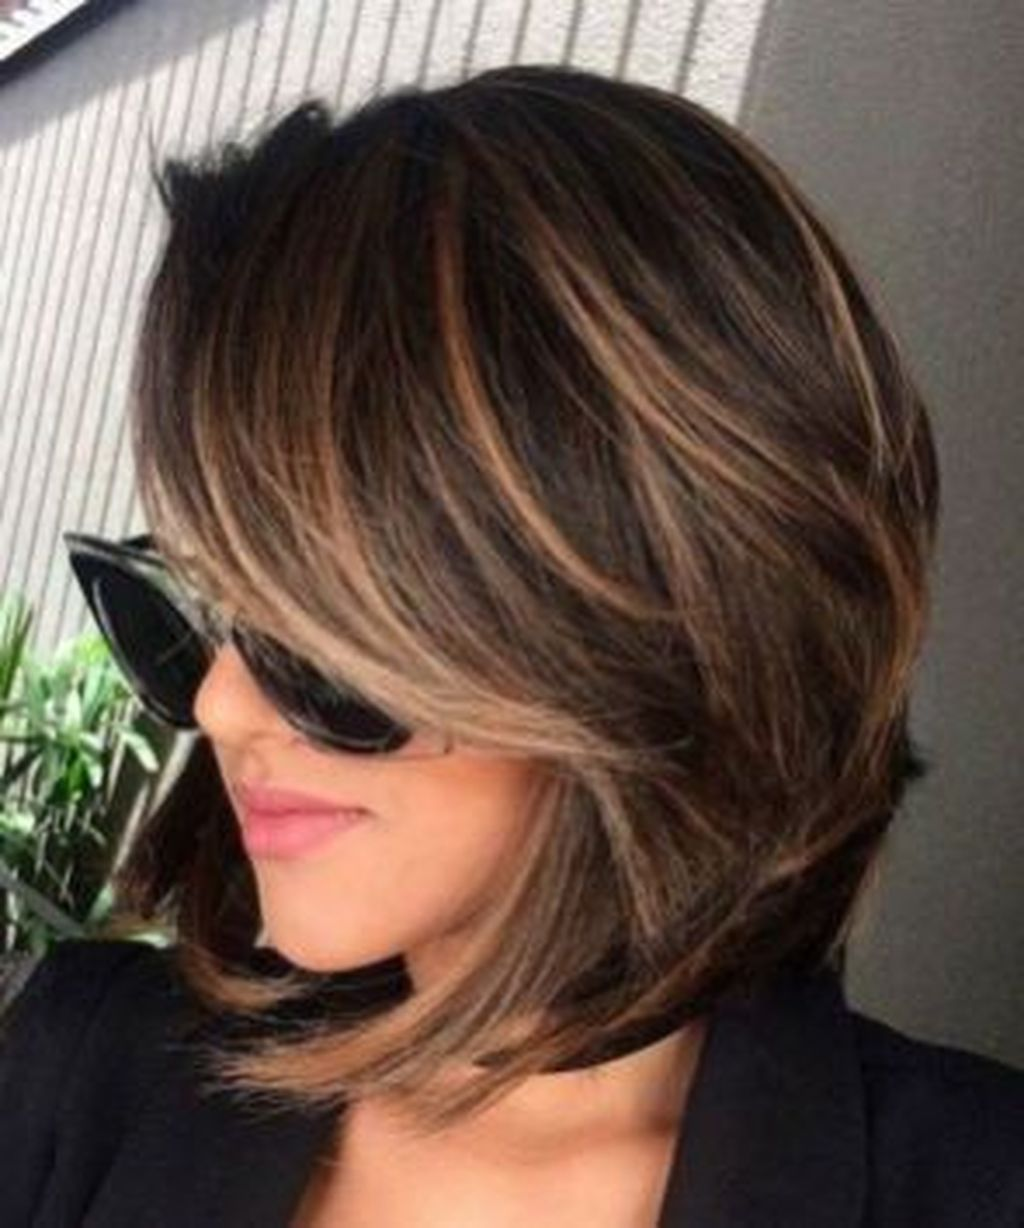 Pin by summer blaby on b e a u t y hair art pinterest haircuts